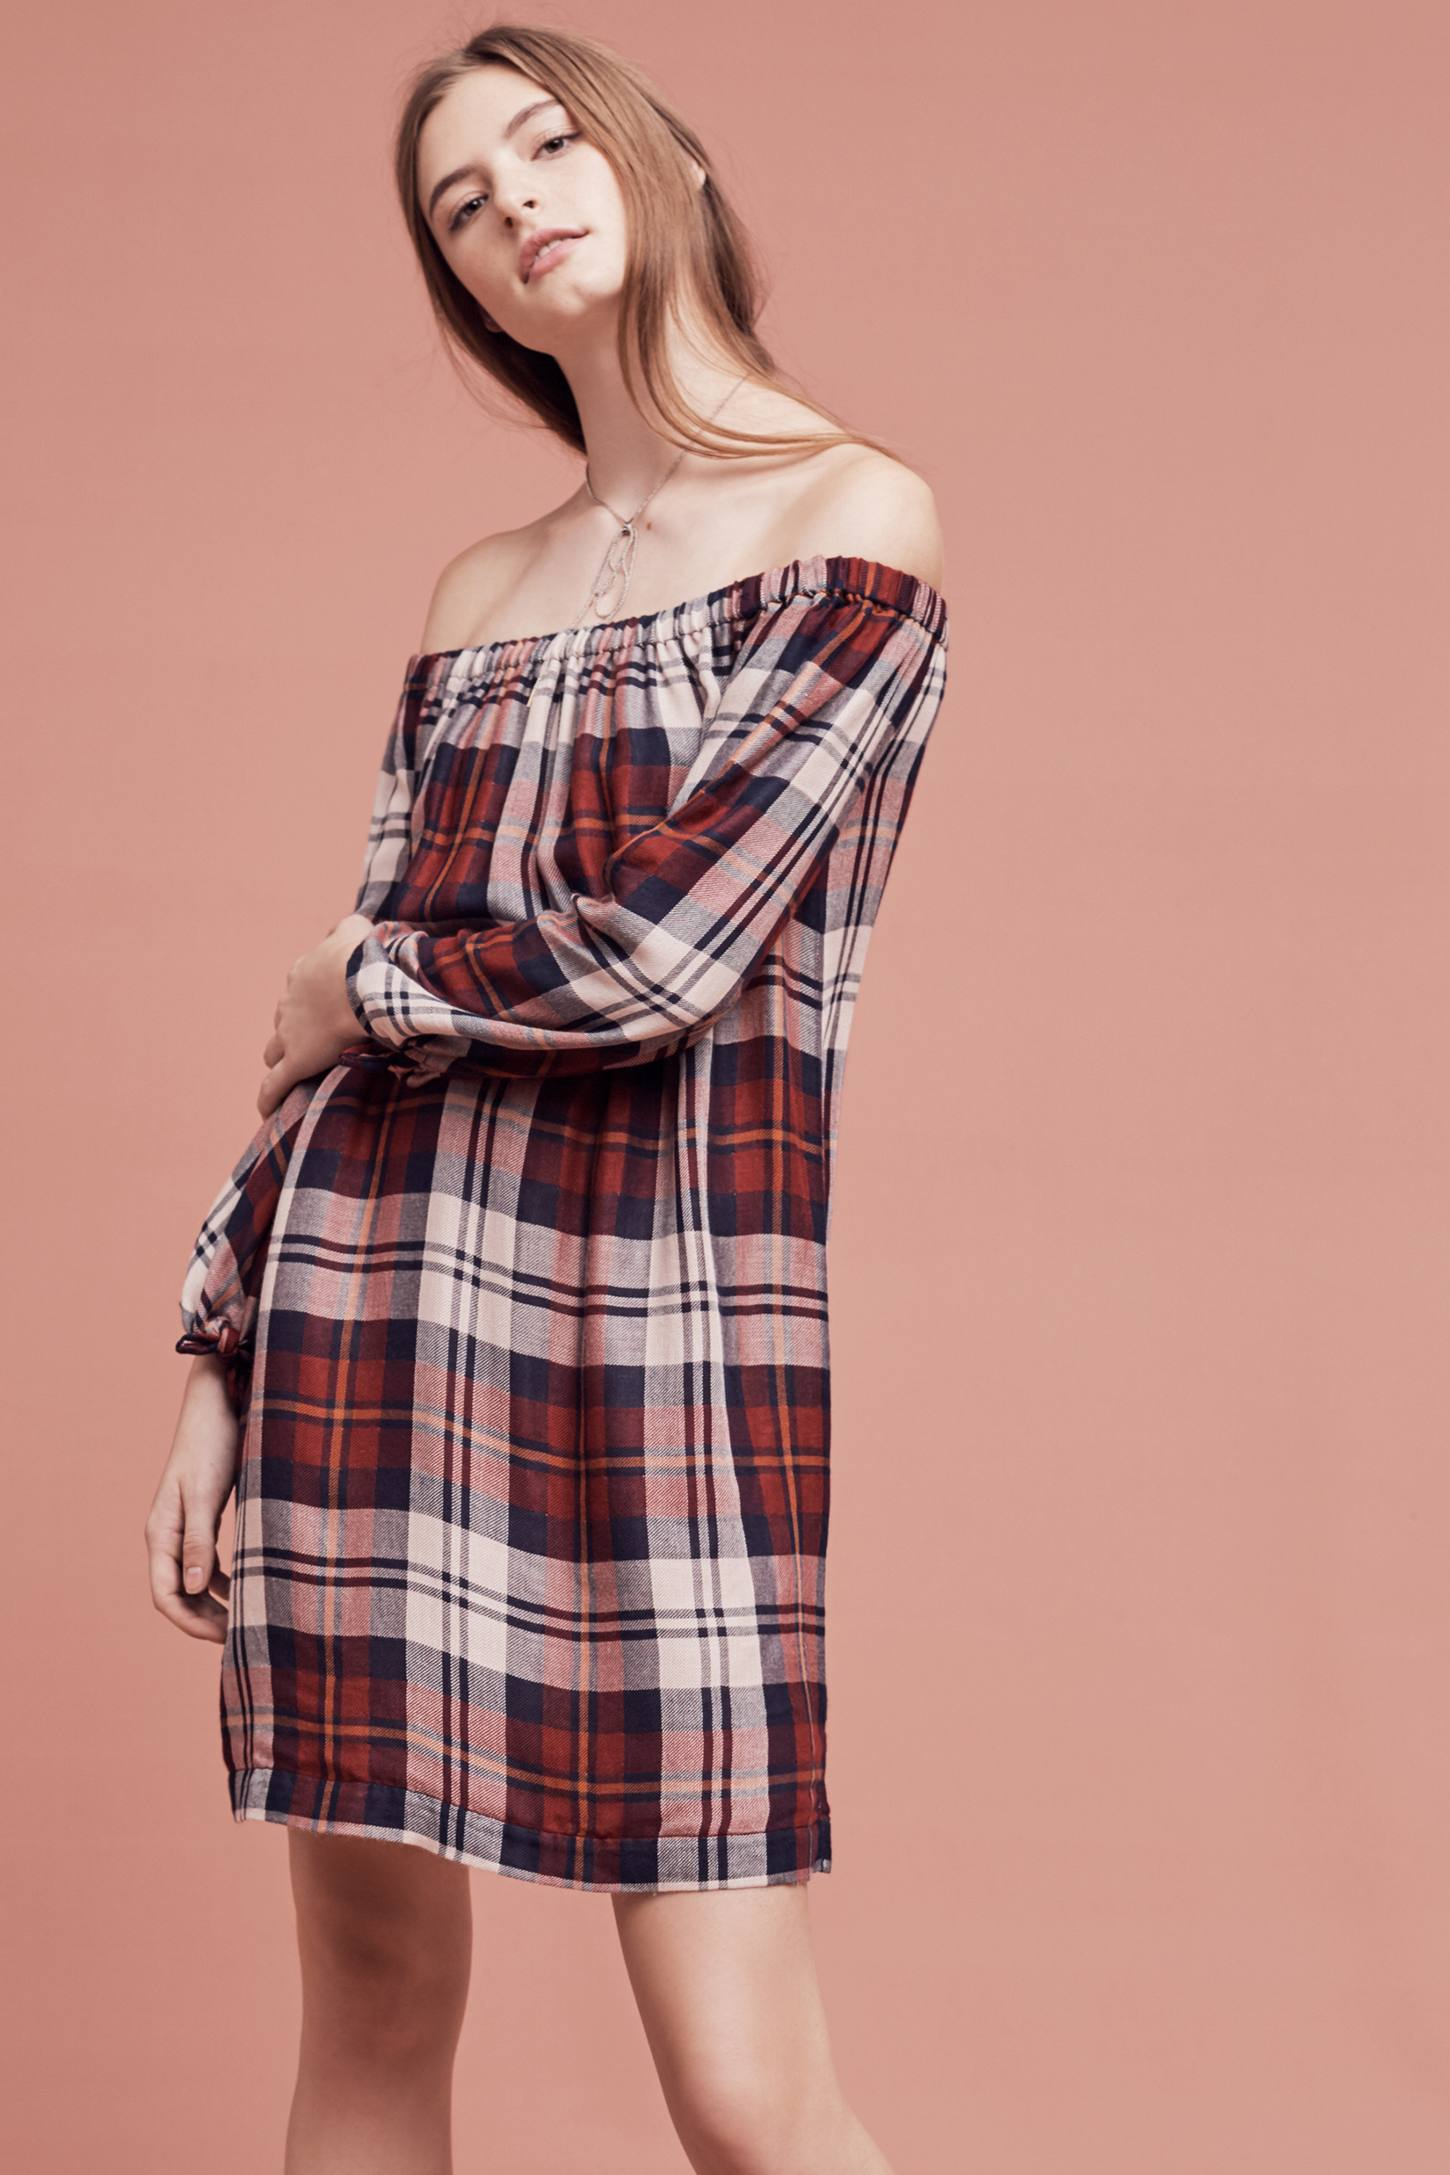 Slide View: 2: Plaid Off-The-Shoulder Tunic Dress